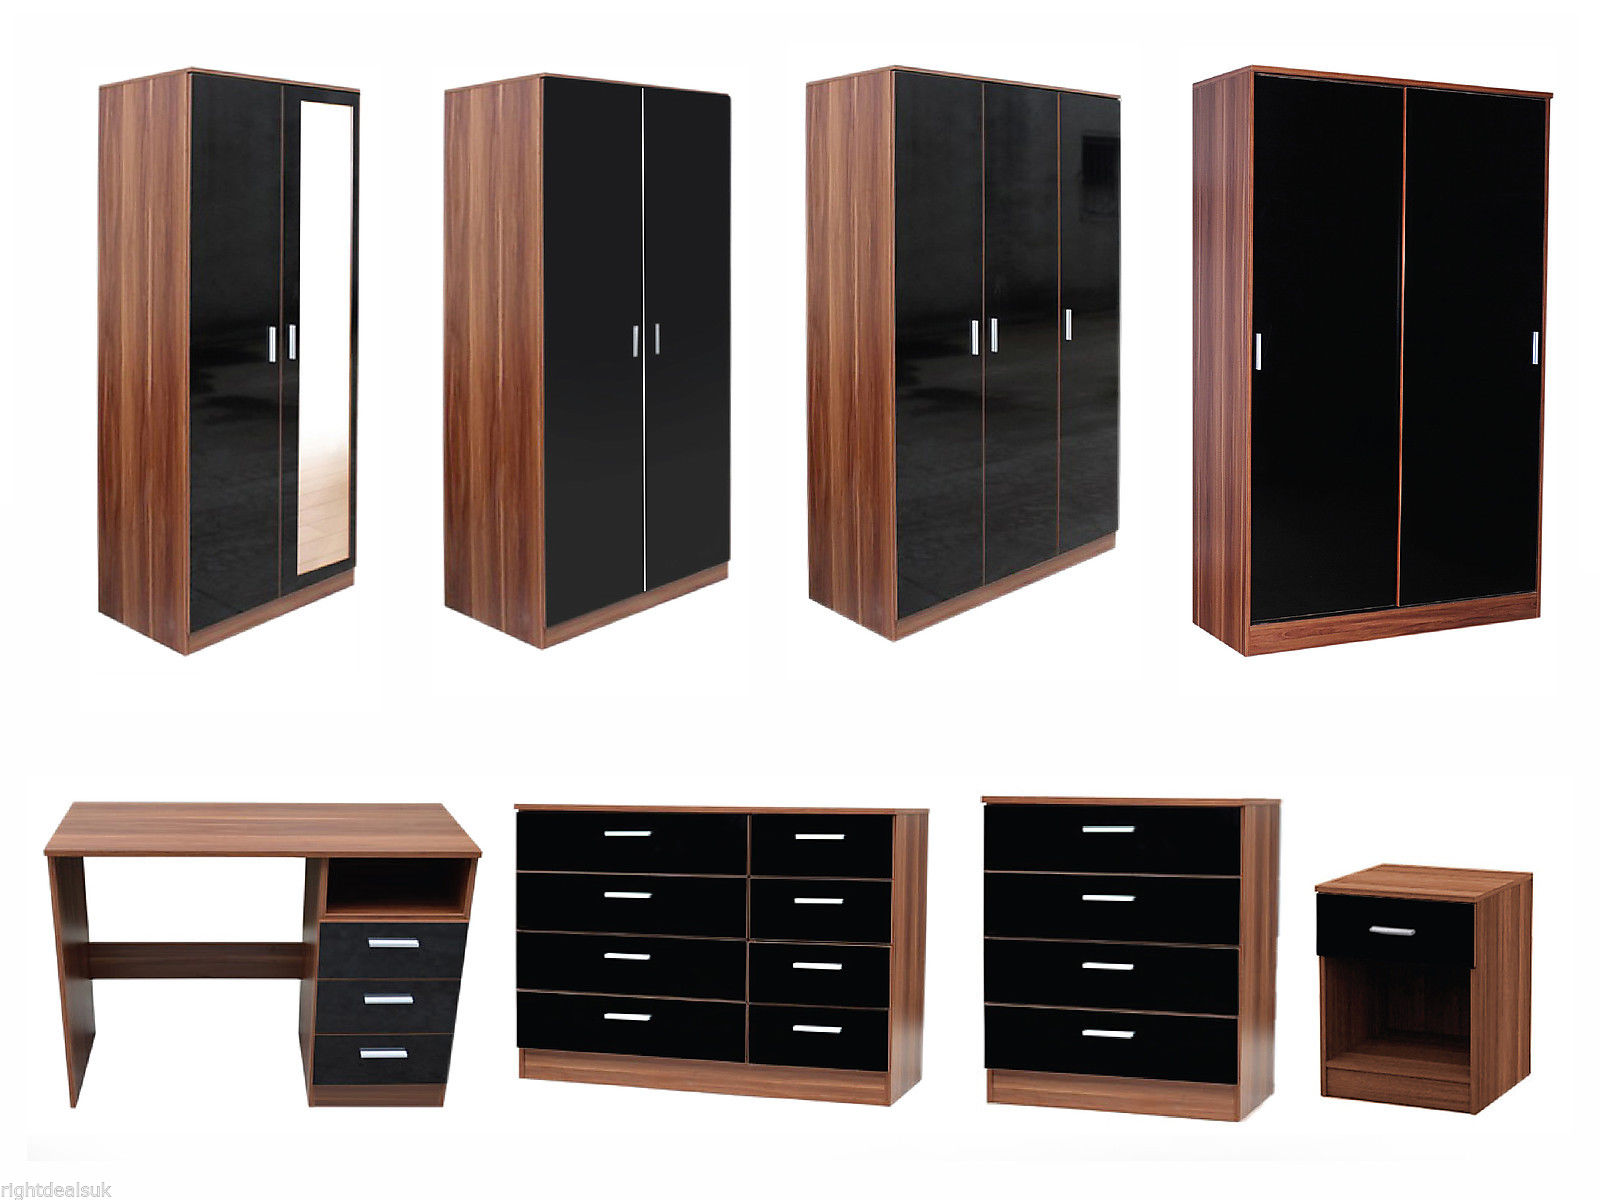 NEW Caspian High Gloss Black & Walnut Bedroom Furniture Set Full